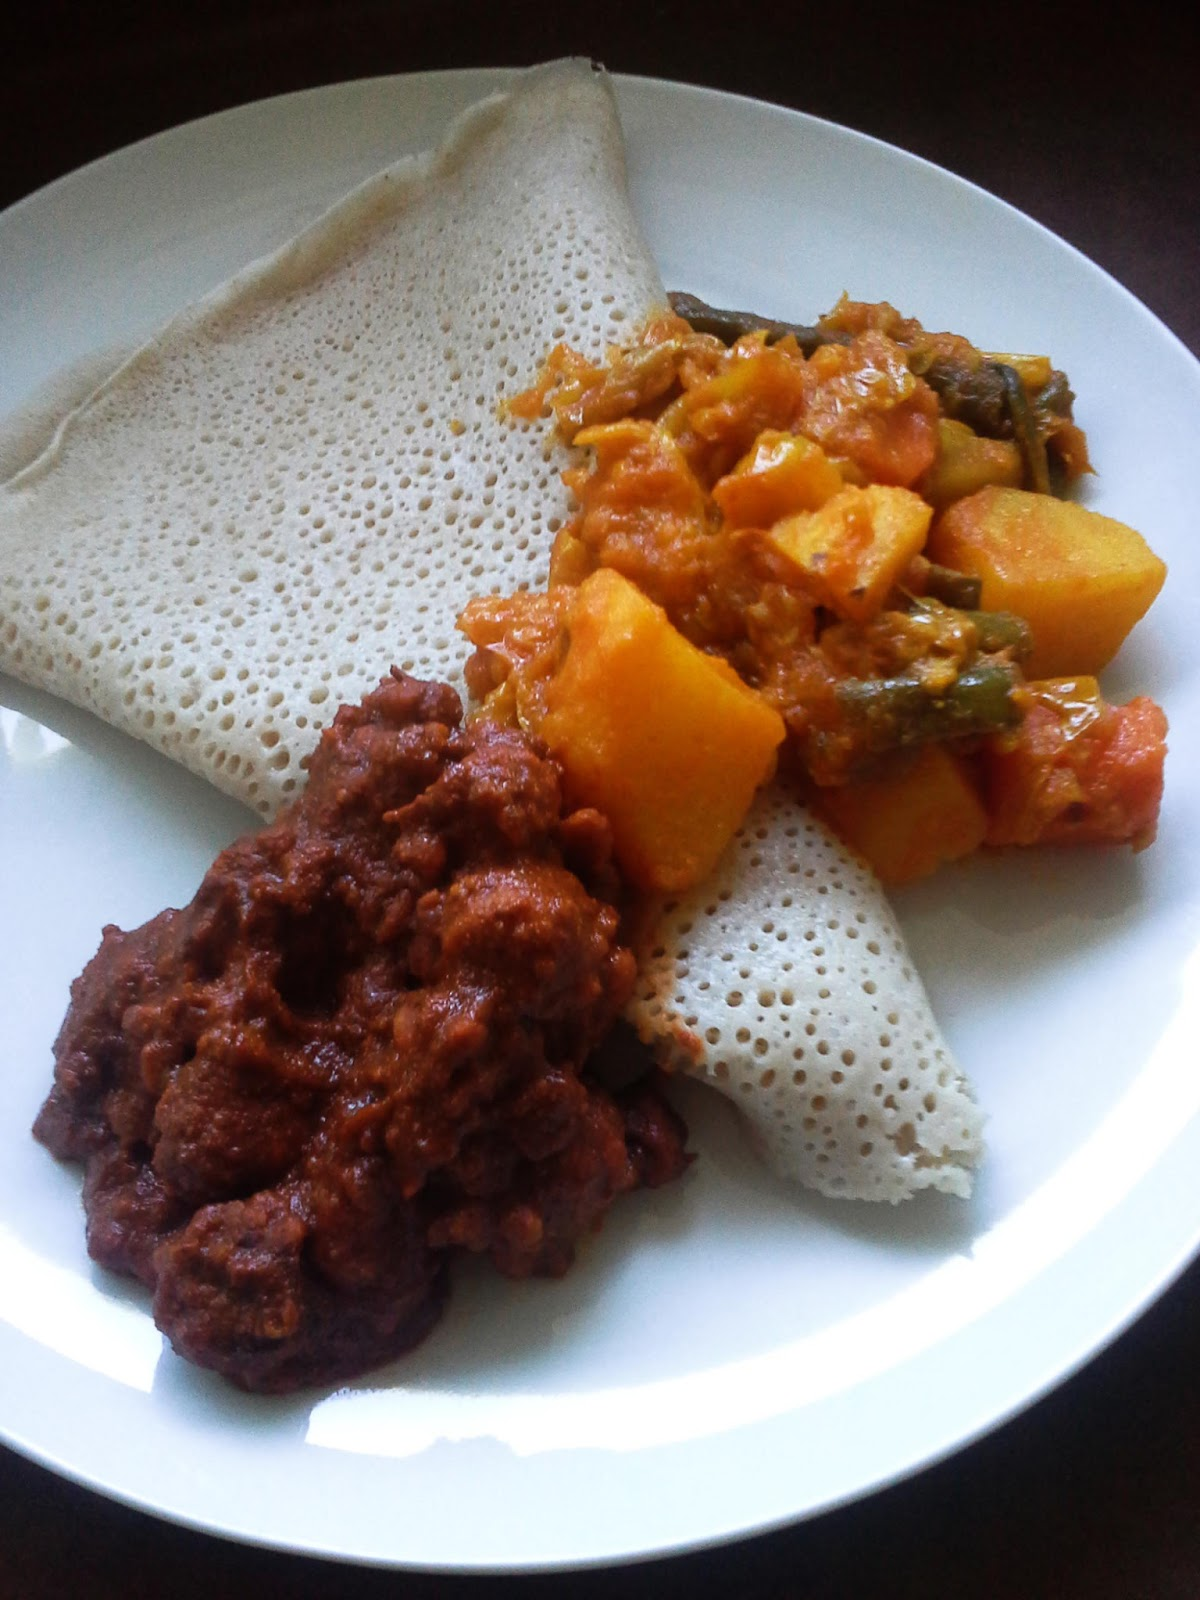 A PROFOUND HATRED OF MEAT SHIMBRA ASA SPICY CHICKPEA STEW